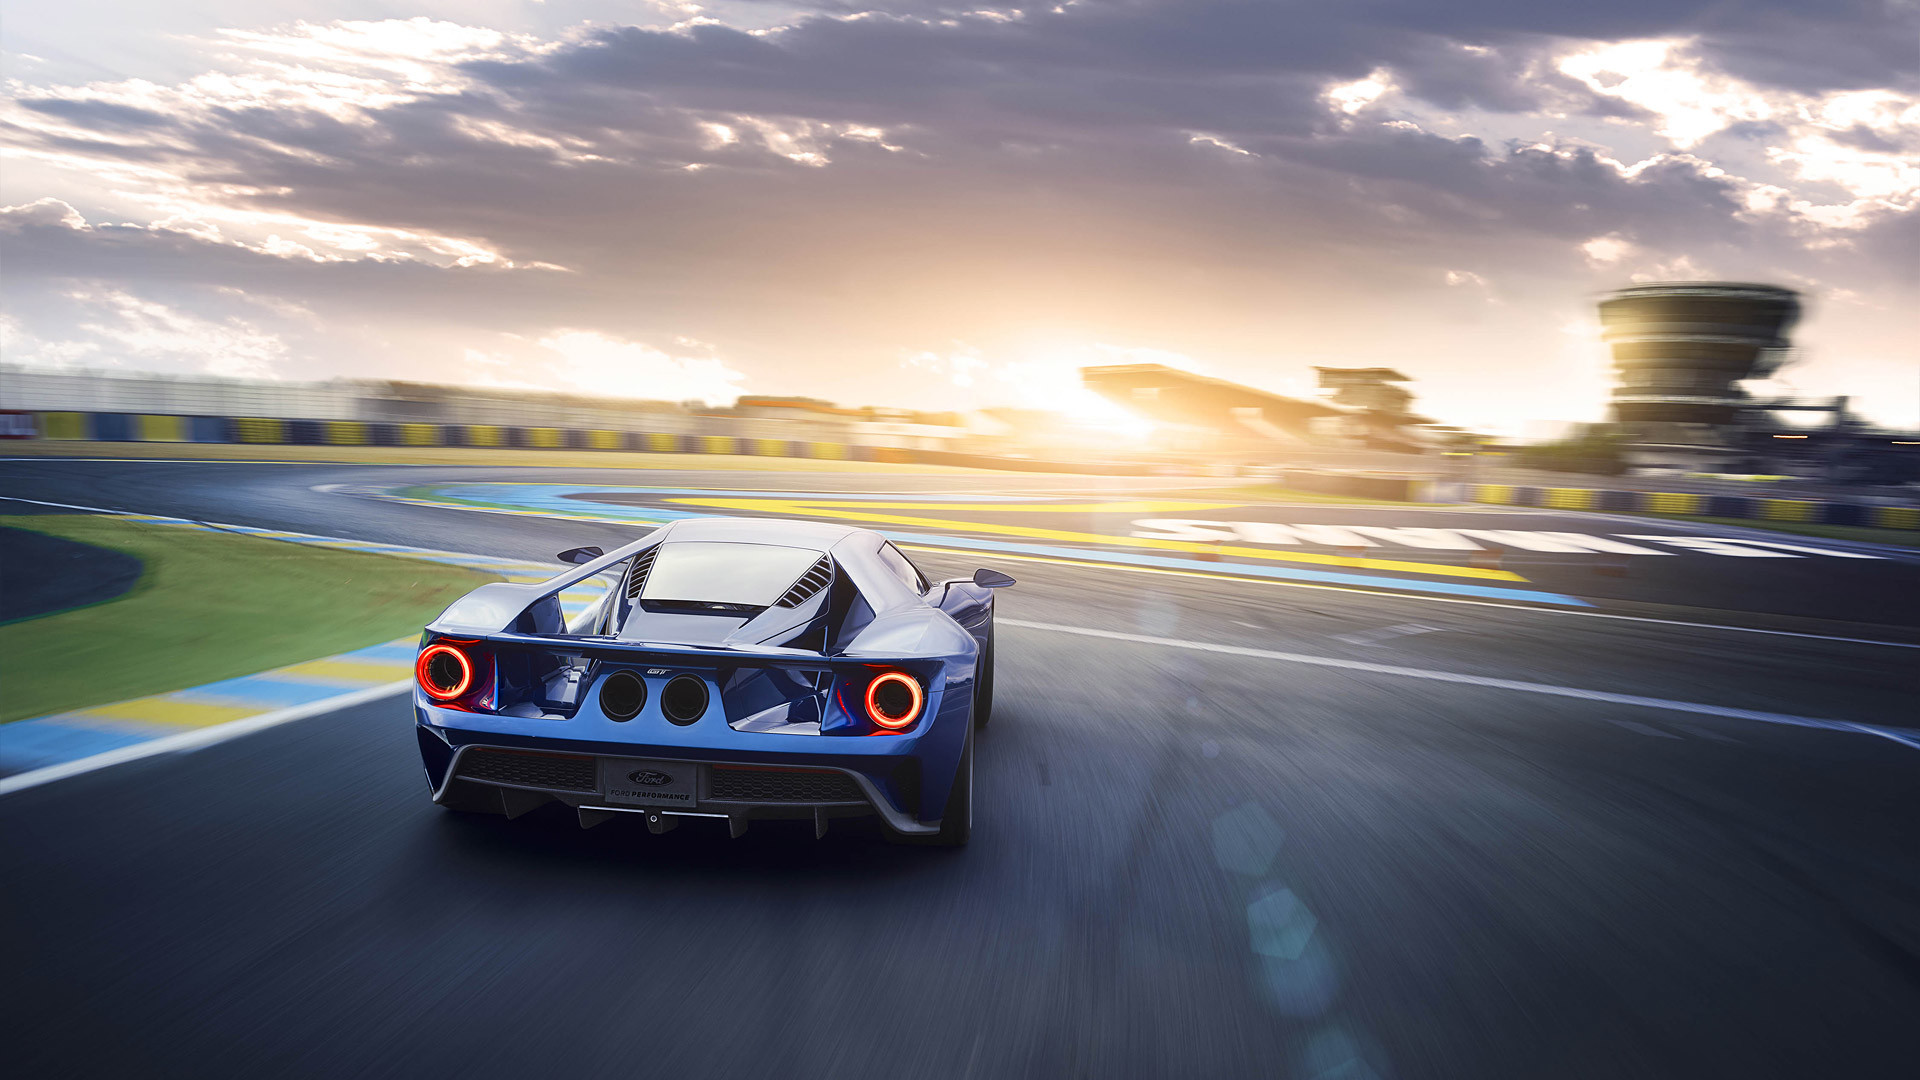 Res: 1920x1080, ford gt40 wallpaper #704538